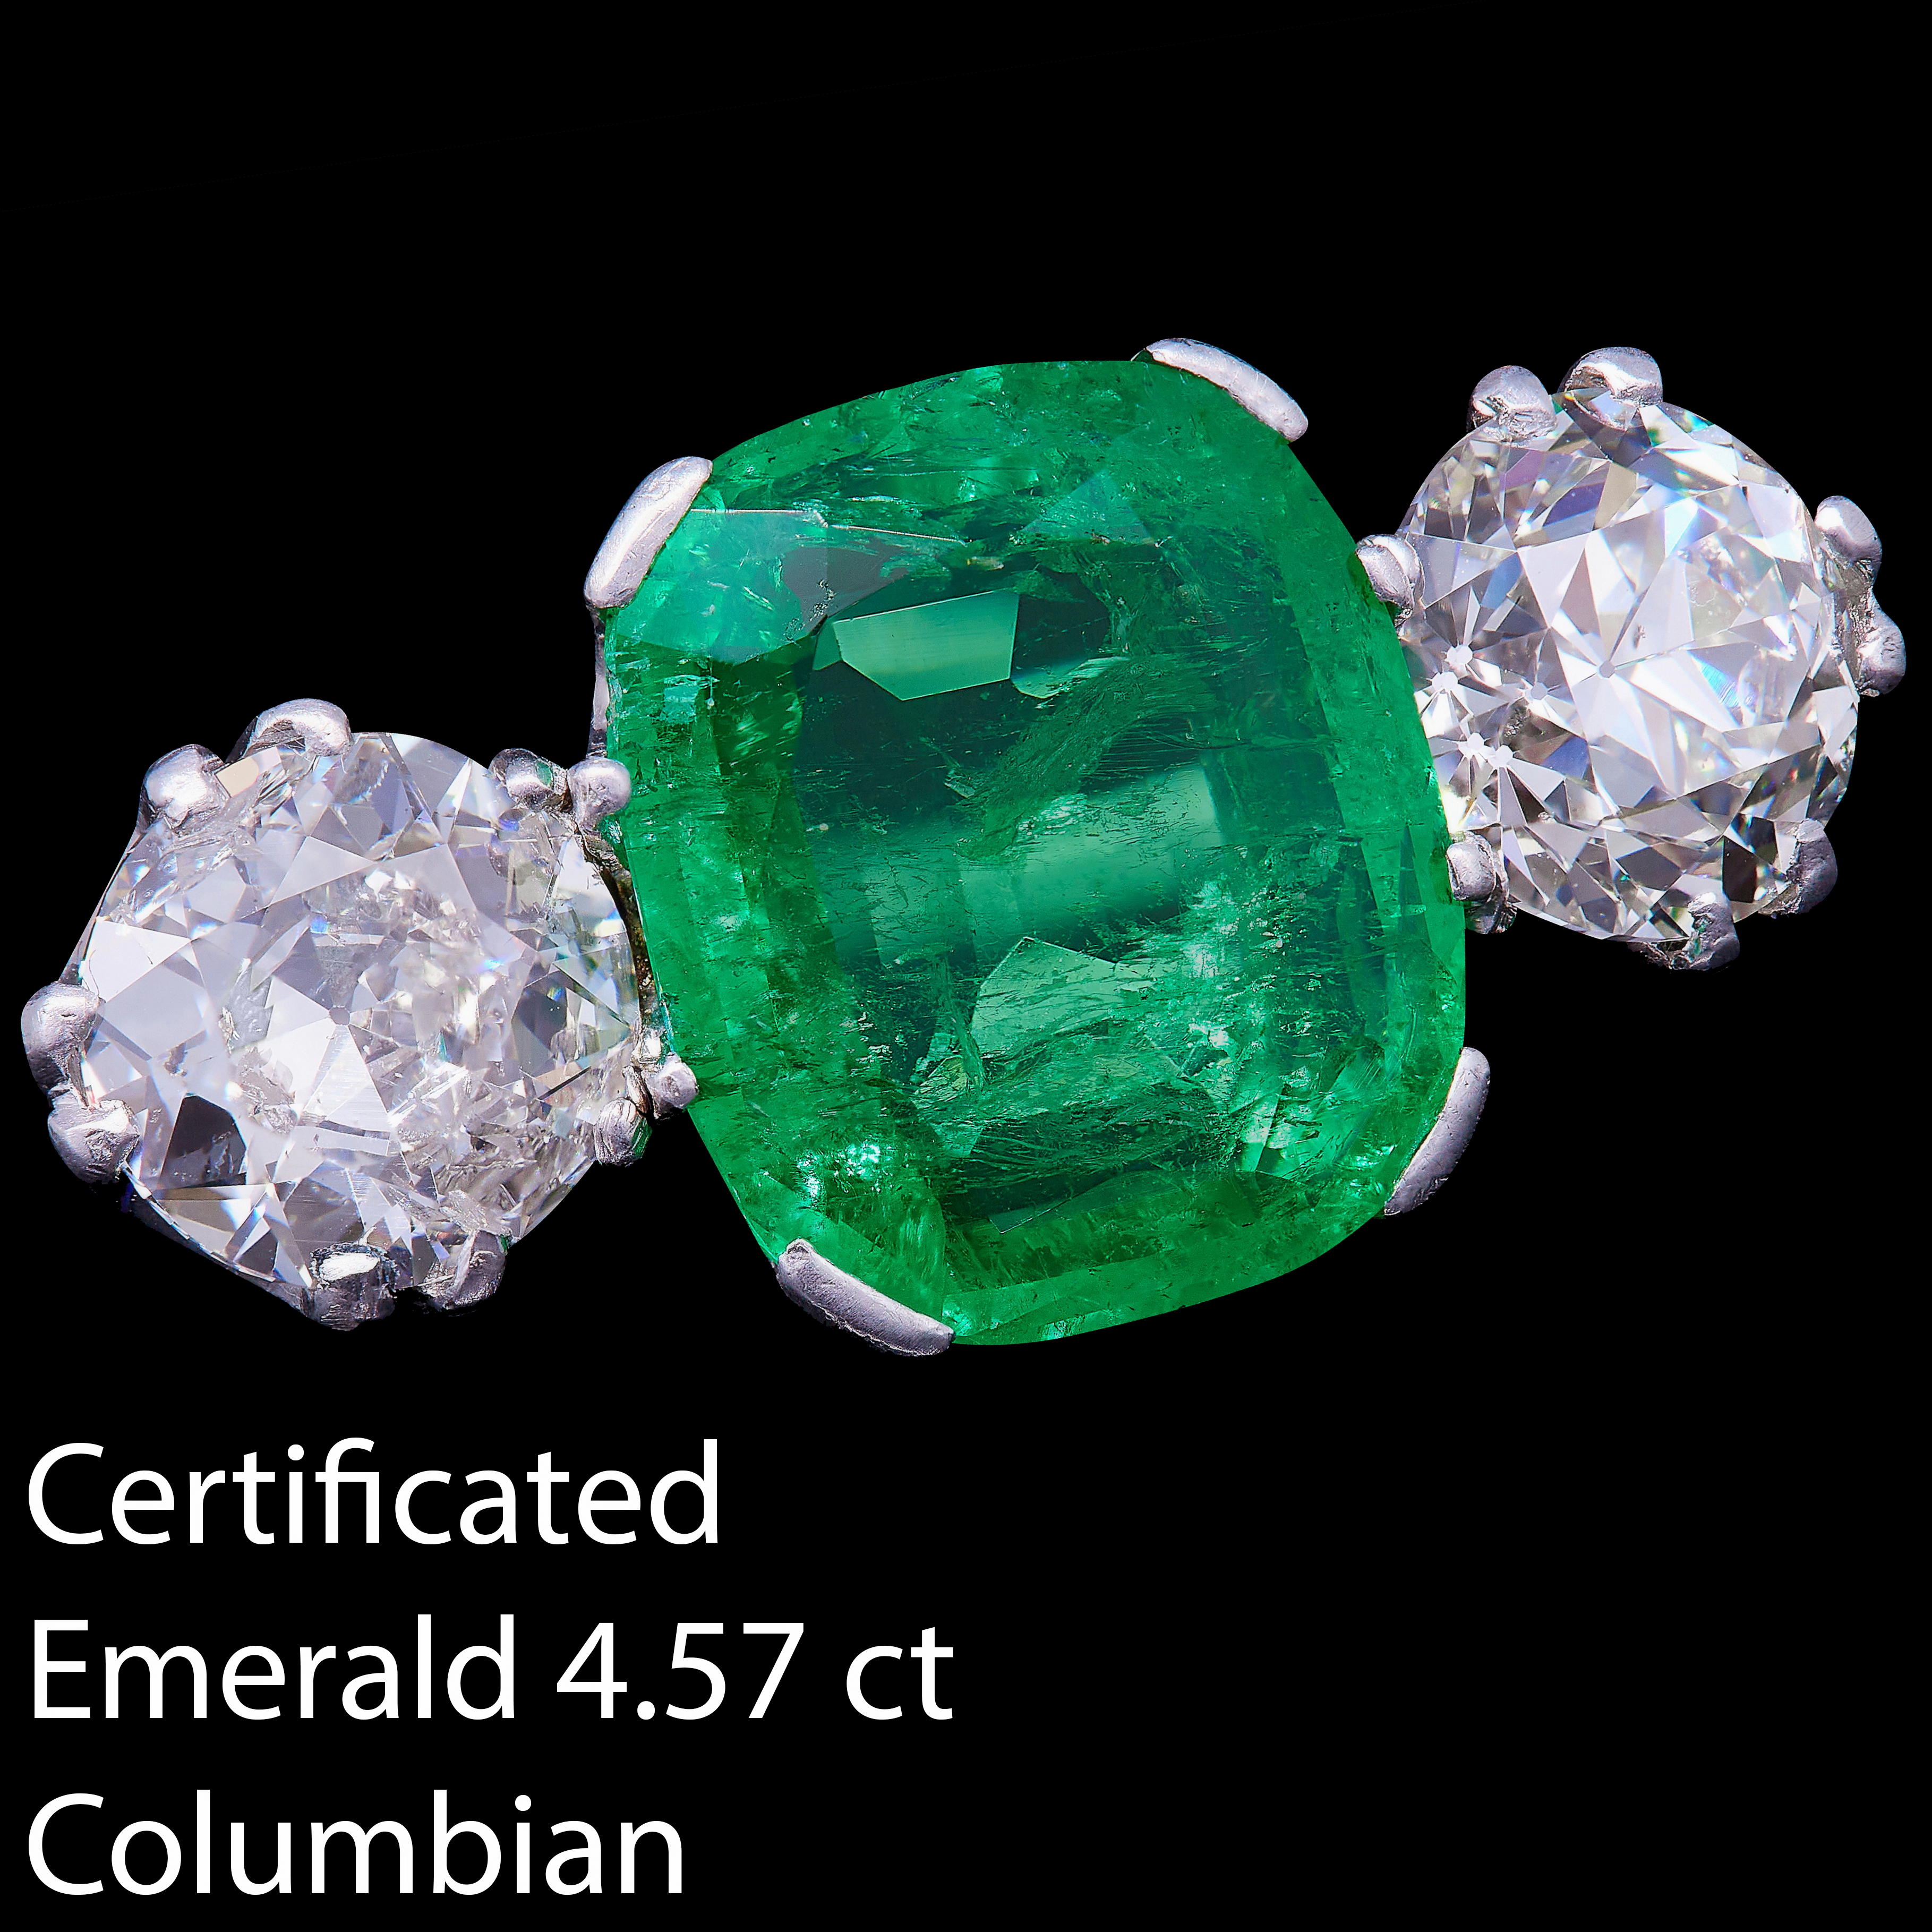 IMPORTANT CERTIFICATED 4.57 CT. COLOMBIAN EMERALD AND DIAMOND 3-STONE RING